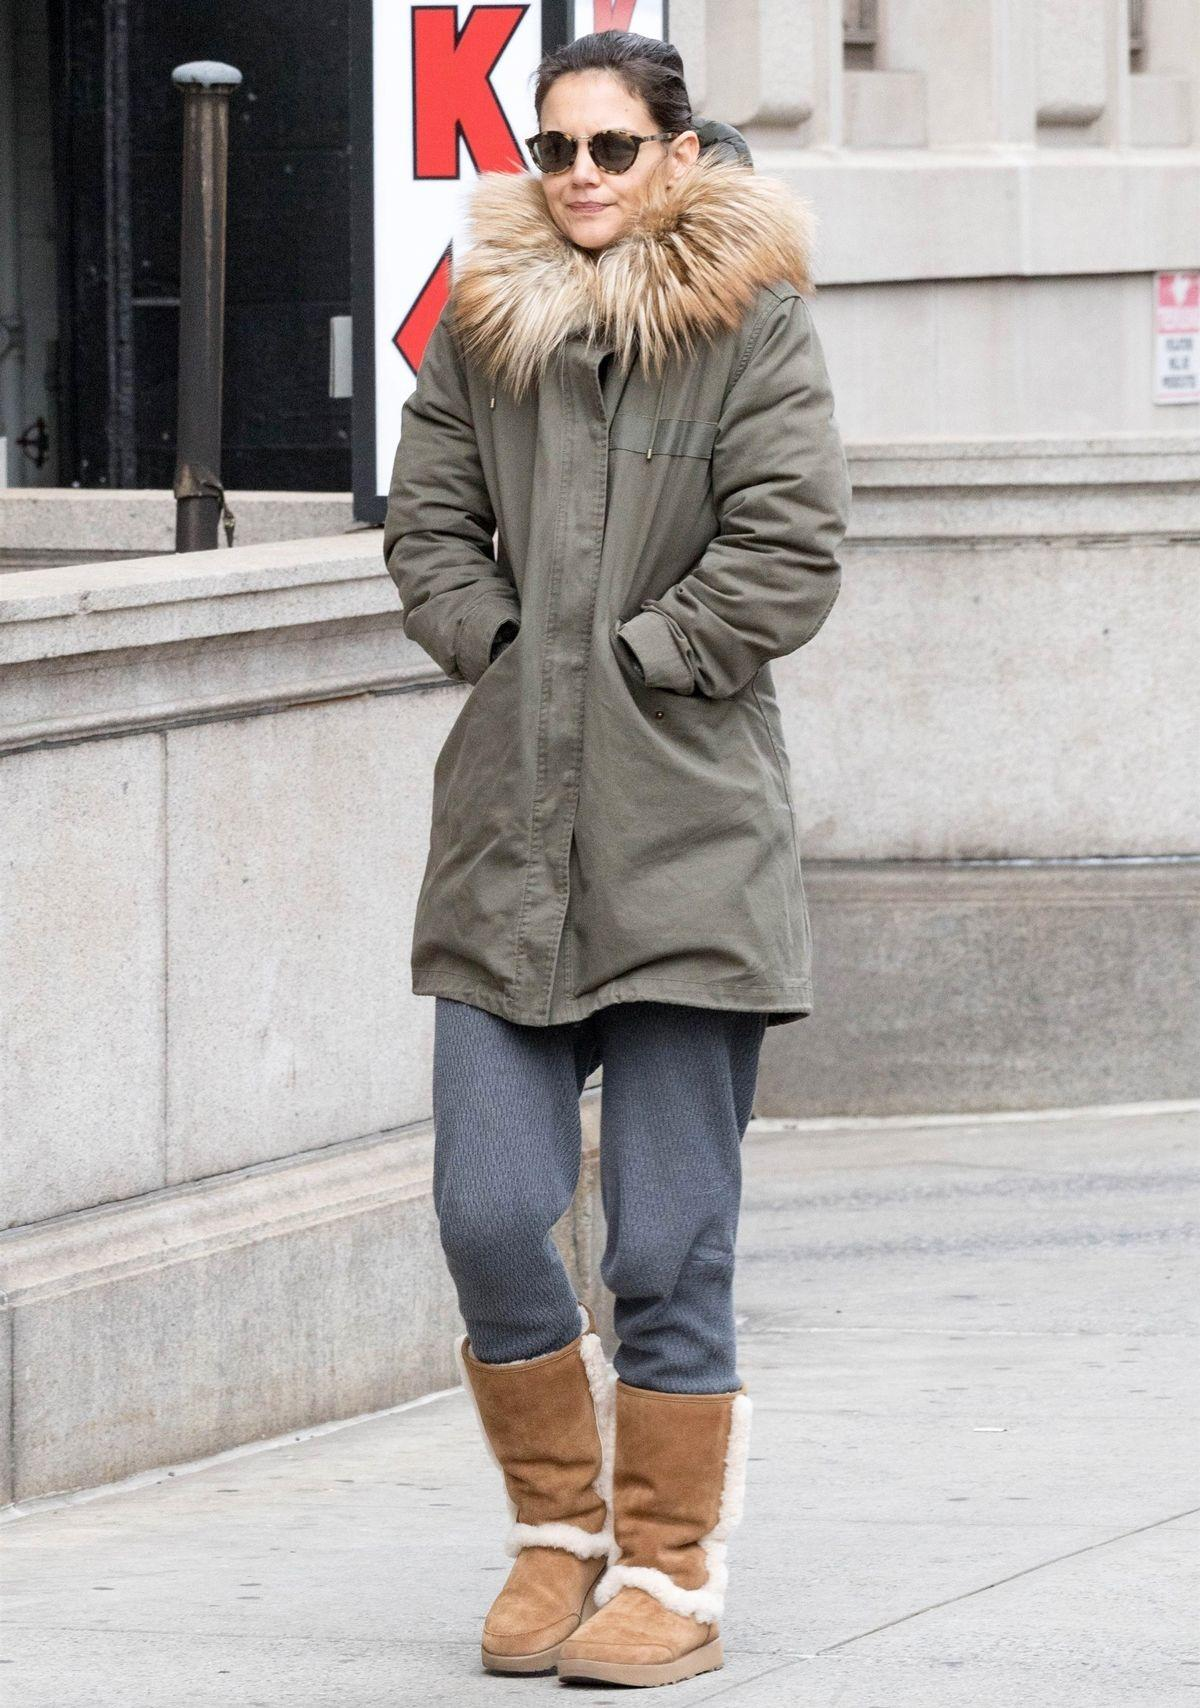 ddb814904c6 7 Ways Celebs Are Wearing Ugg Boots in 2019